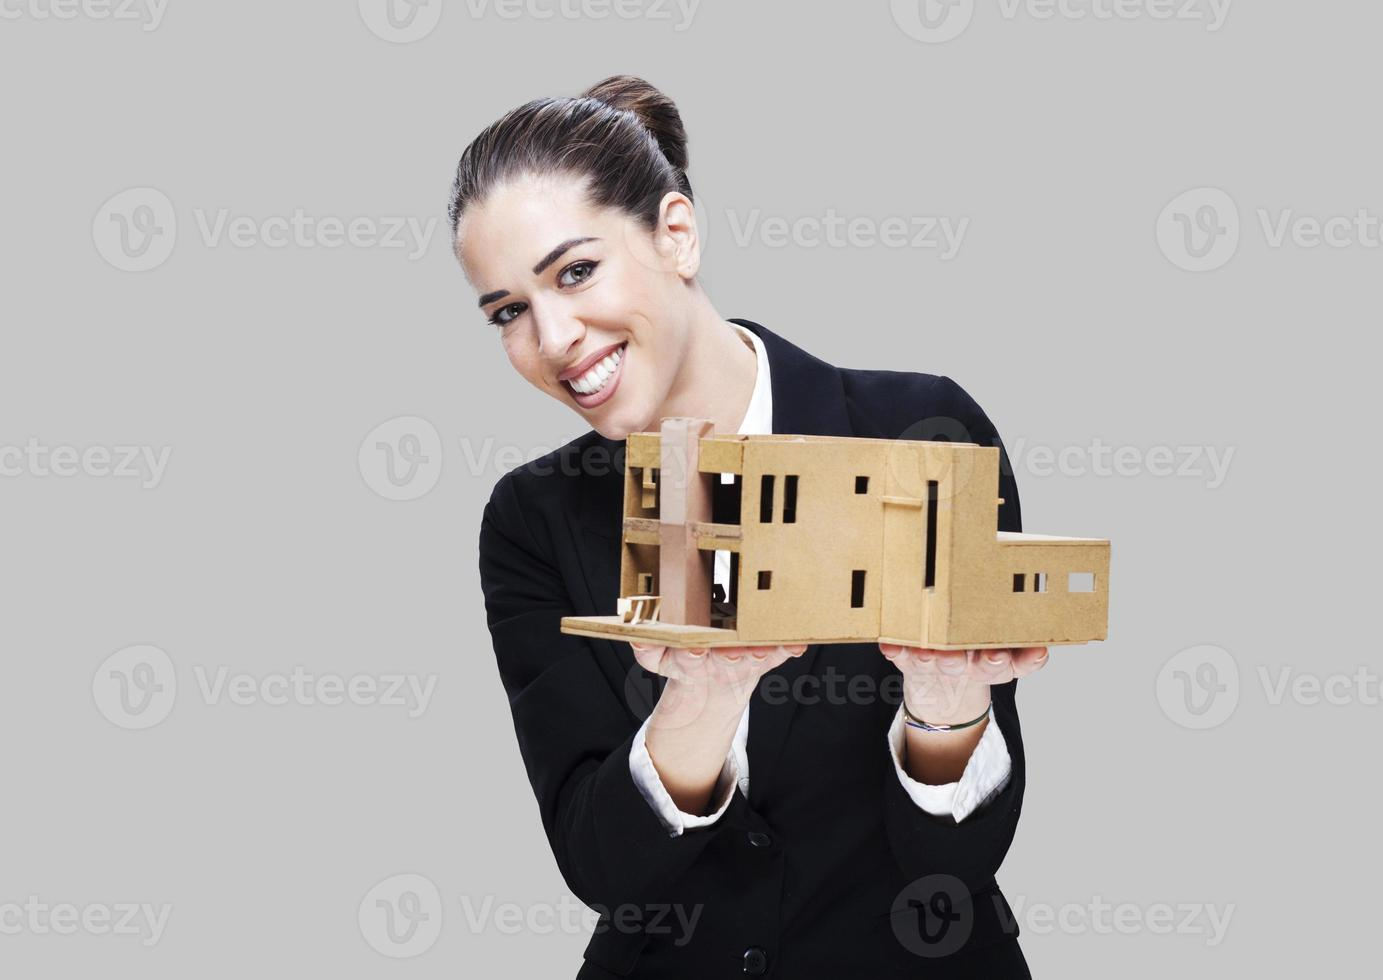 Female business agent holding house model photo